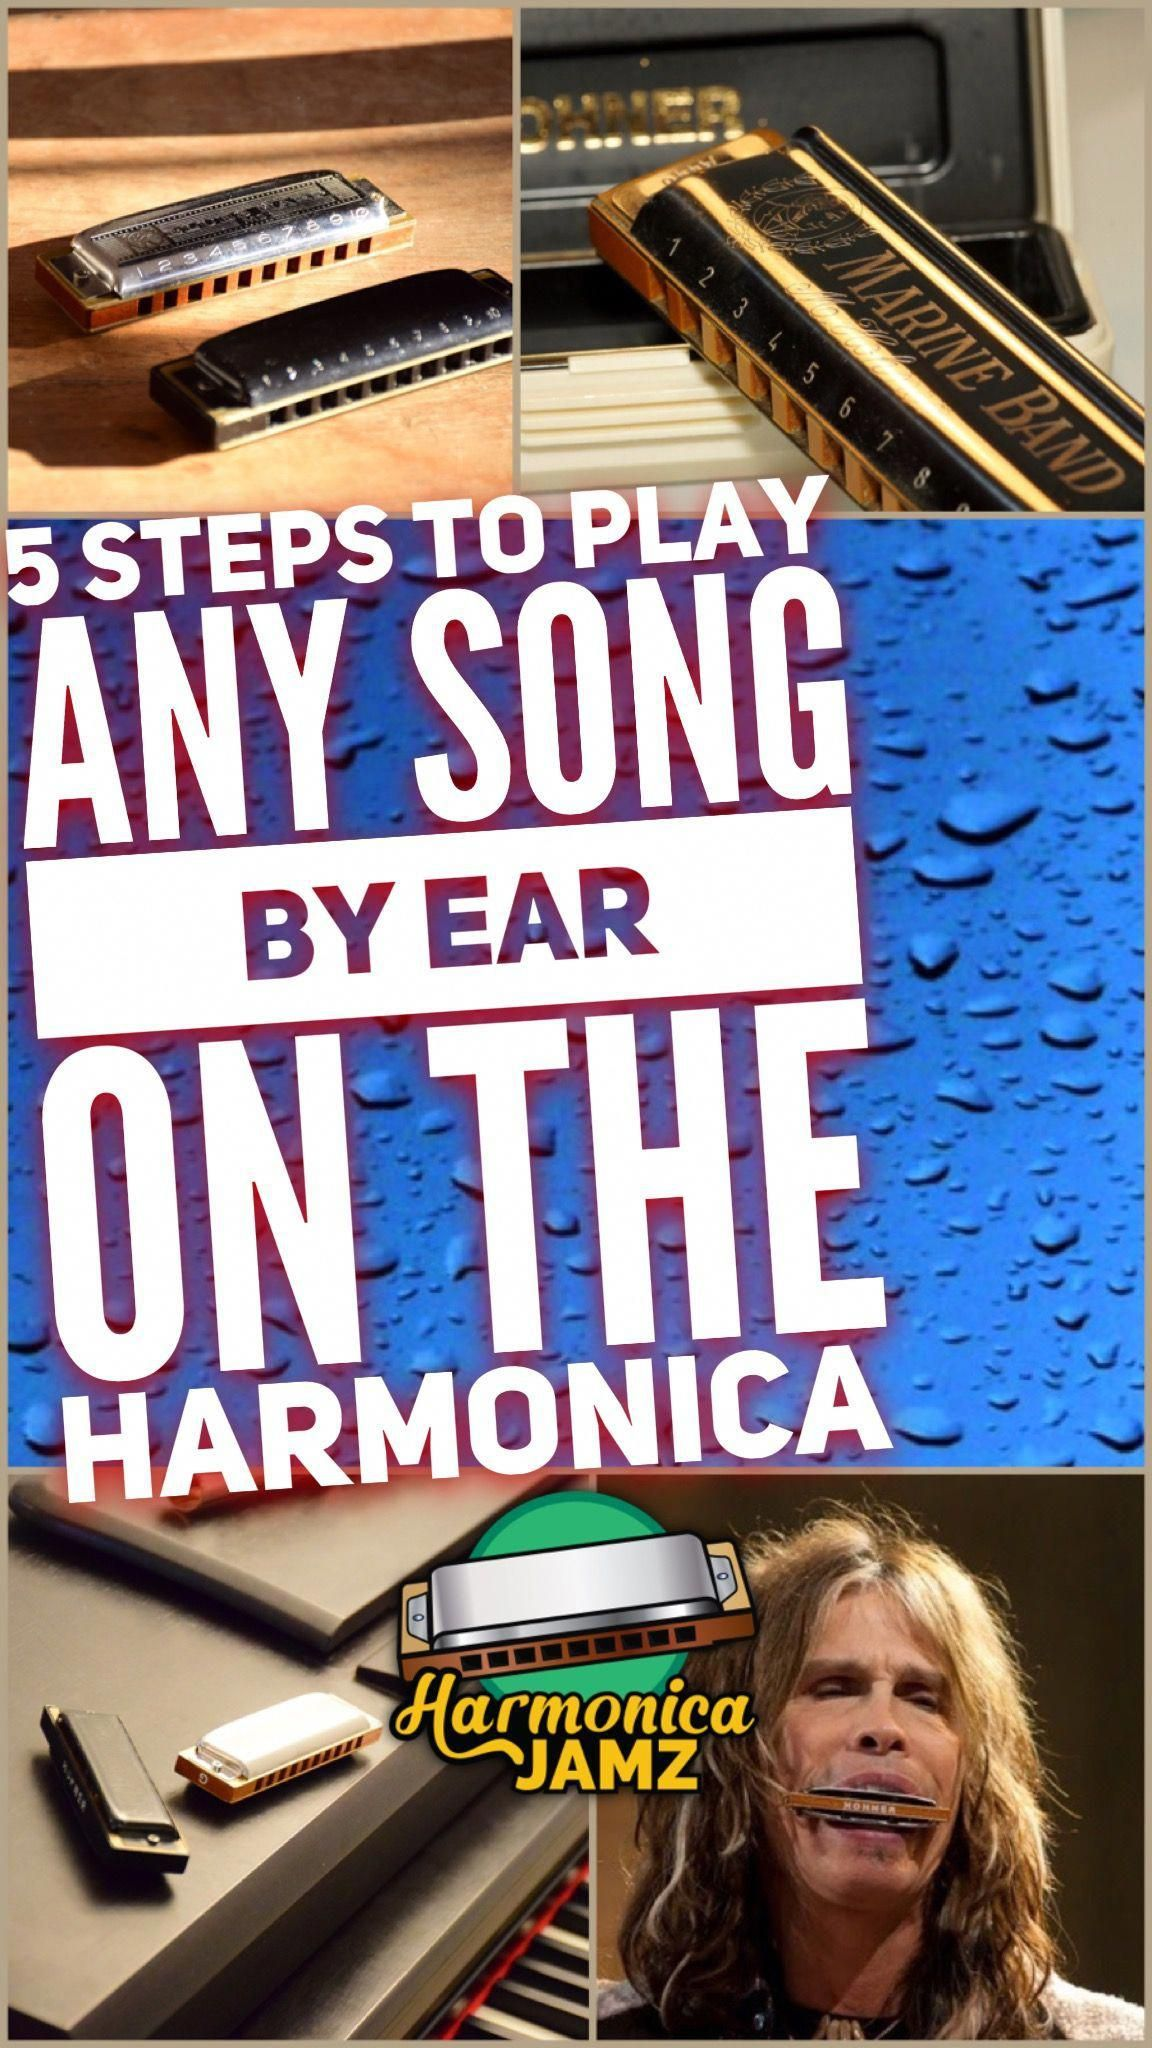 Play any song by ear on the harmonica, by Harmonica Jamz